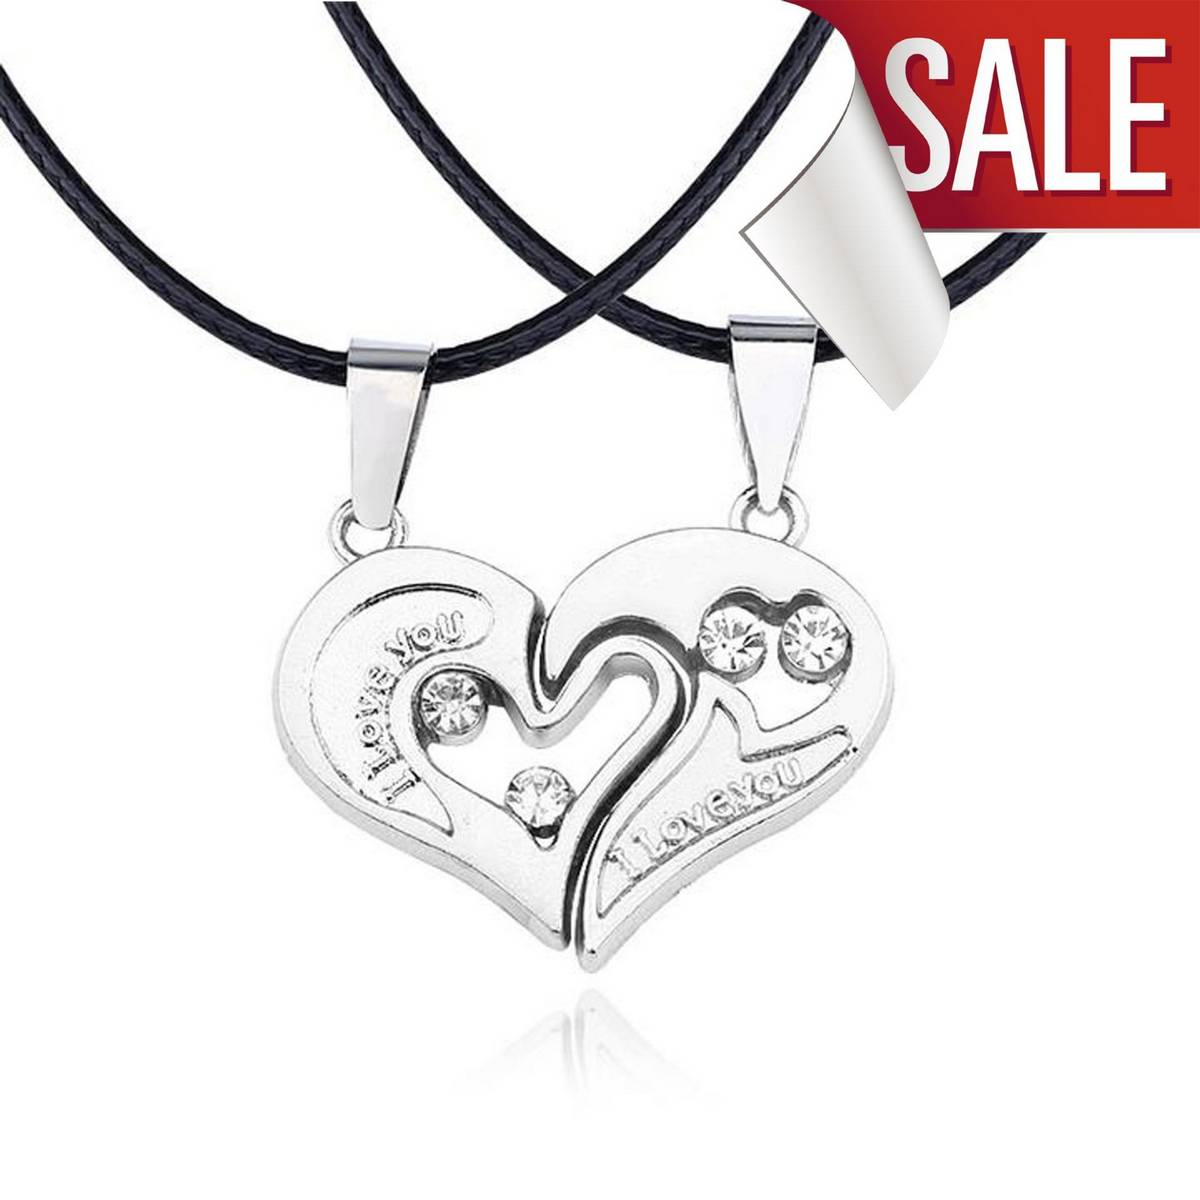 Best Valentine Gift Couple I Love You Heart Shape Locket Silver Stainless Steel Heart Pendant Necklace Unisex